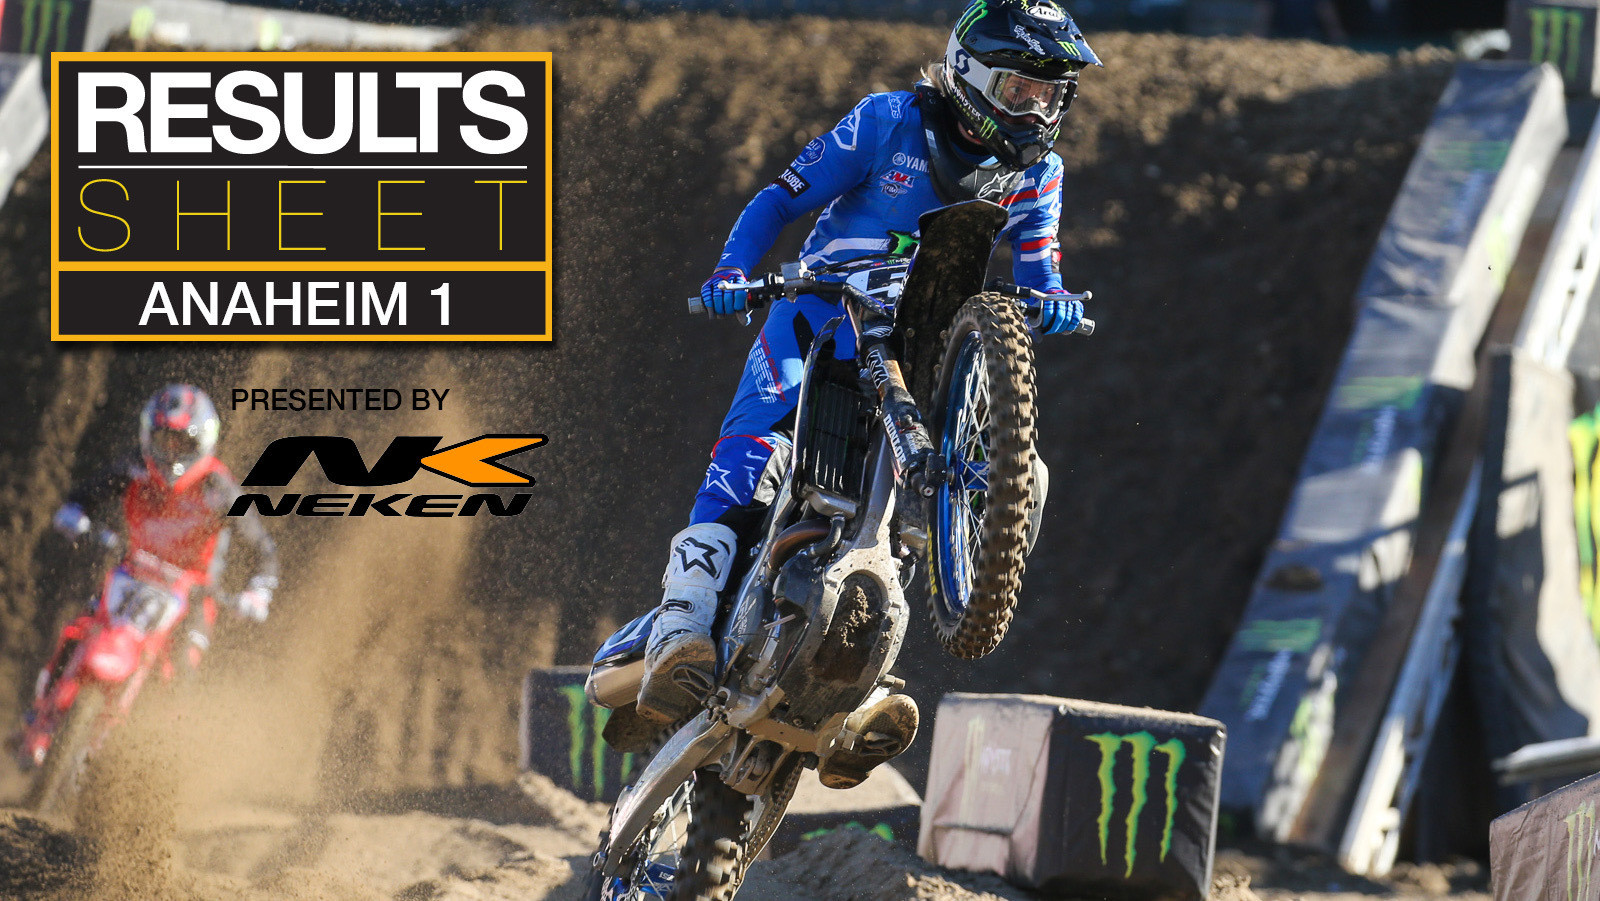 Results Sheet: 2020 Anaheim 1 Supercross